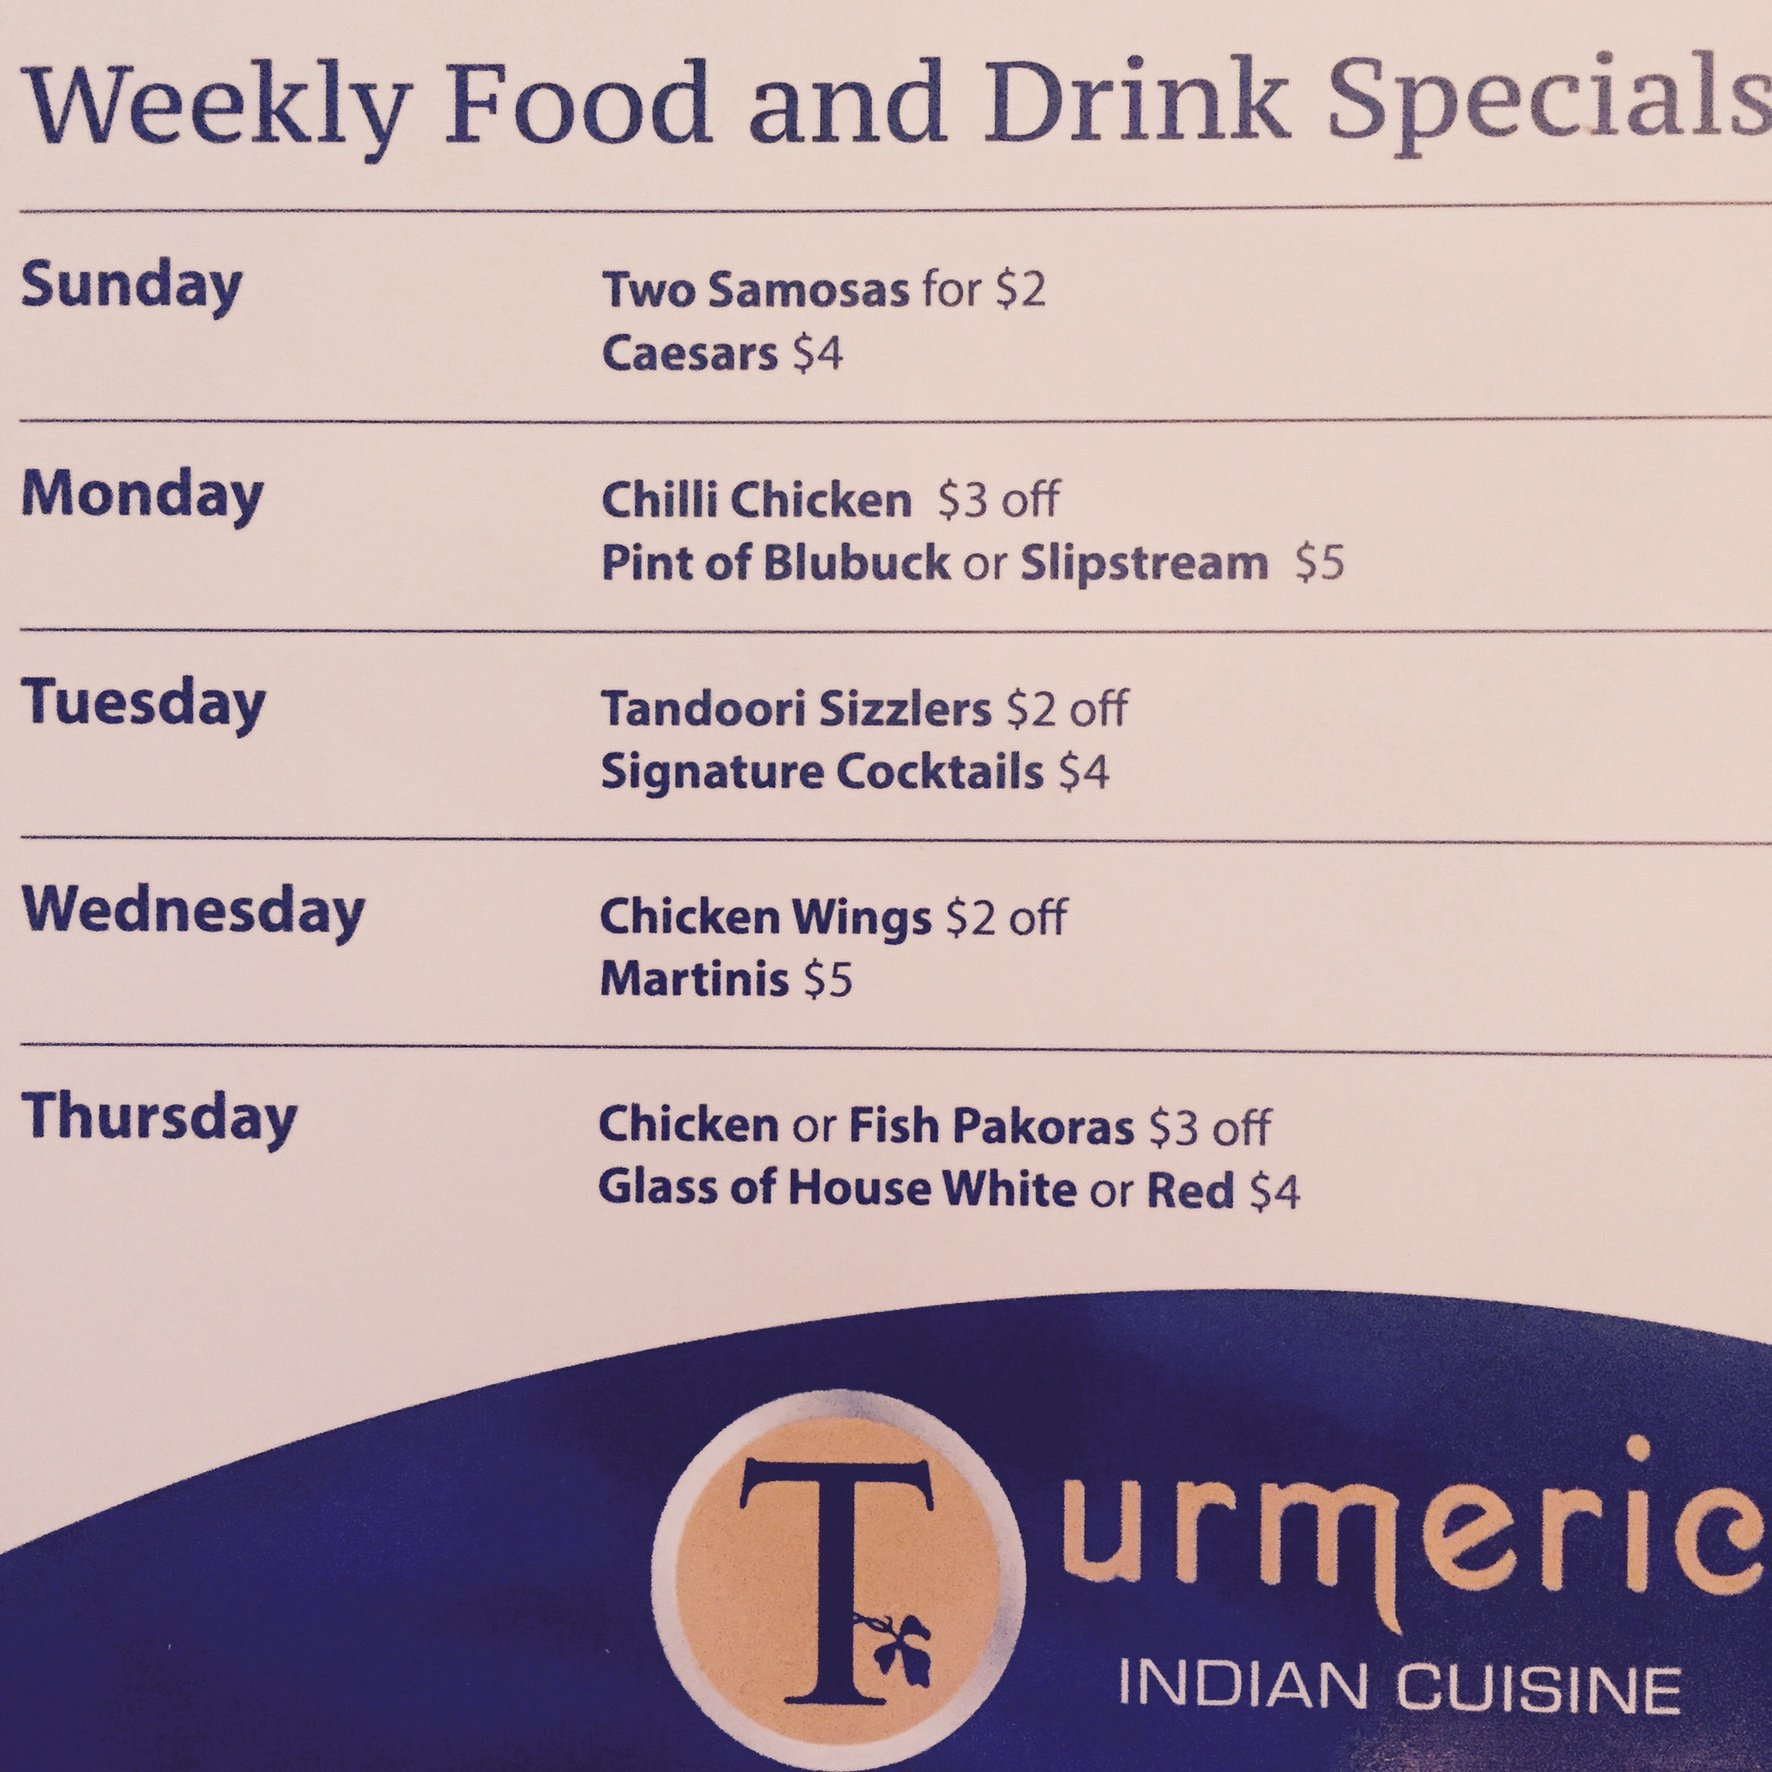 Weekly Food and Drink Specials